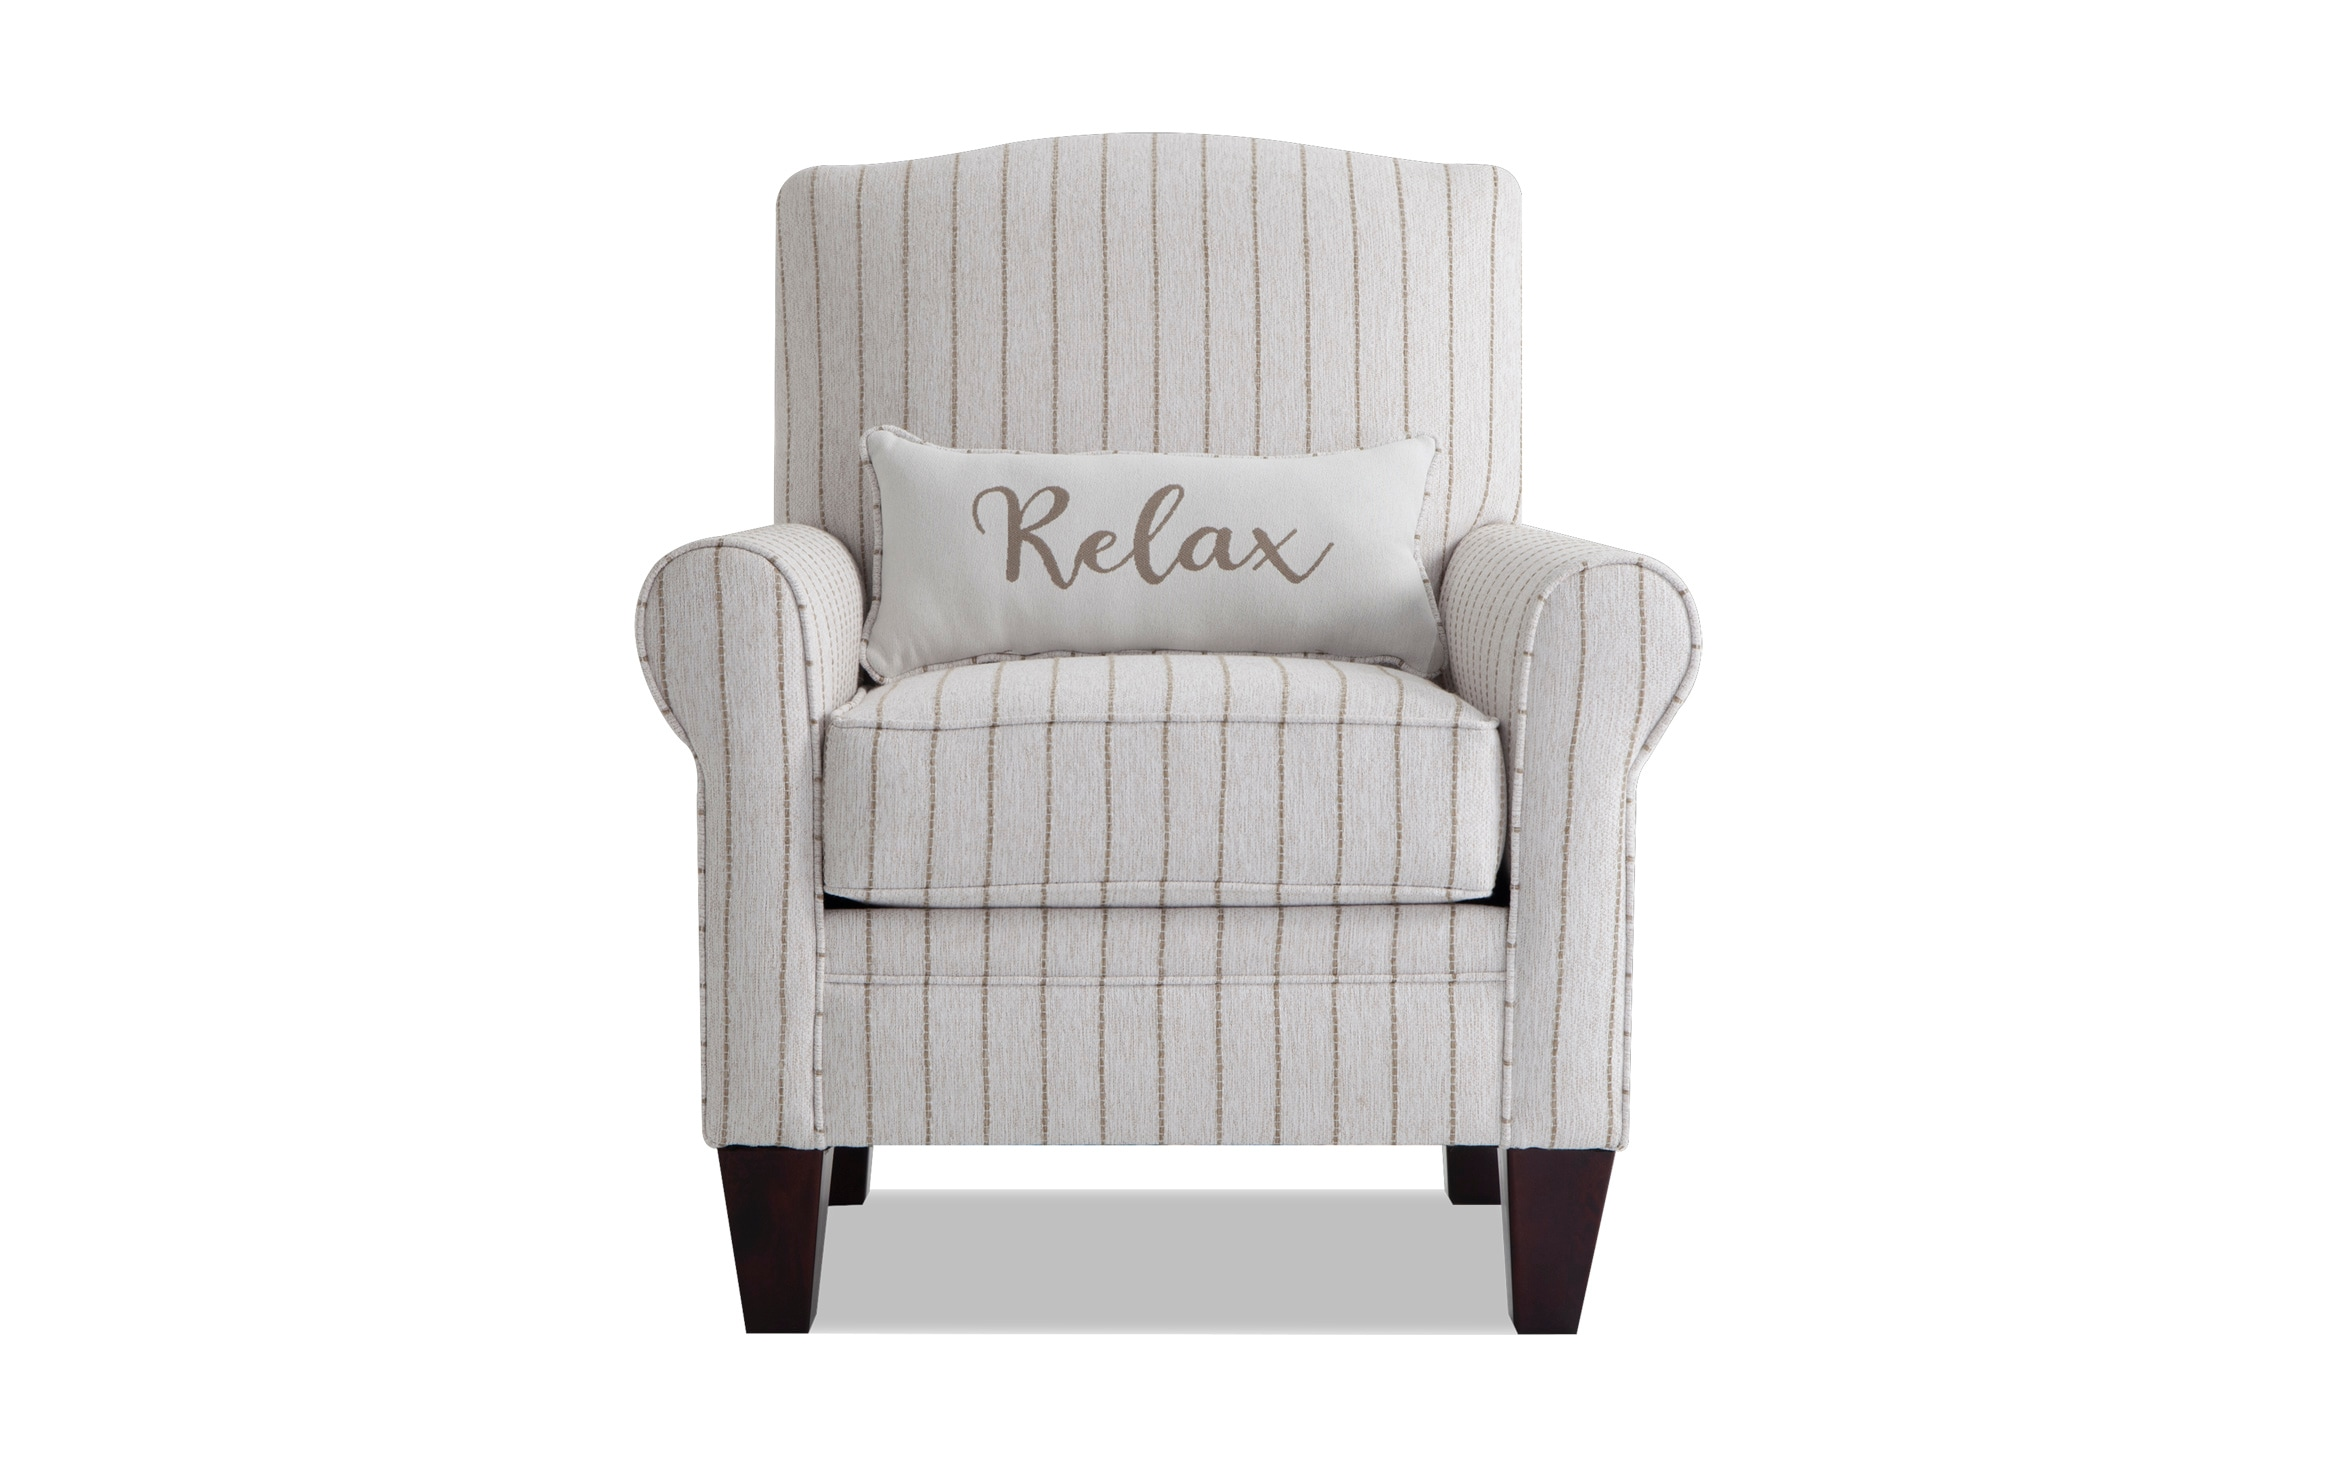 Best Picture Chair Bobs Furniture